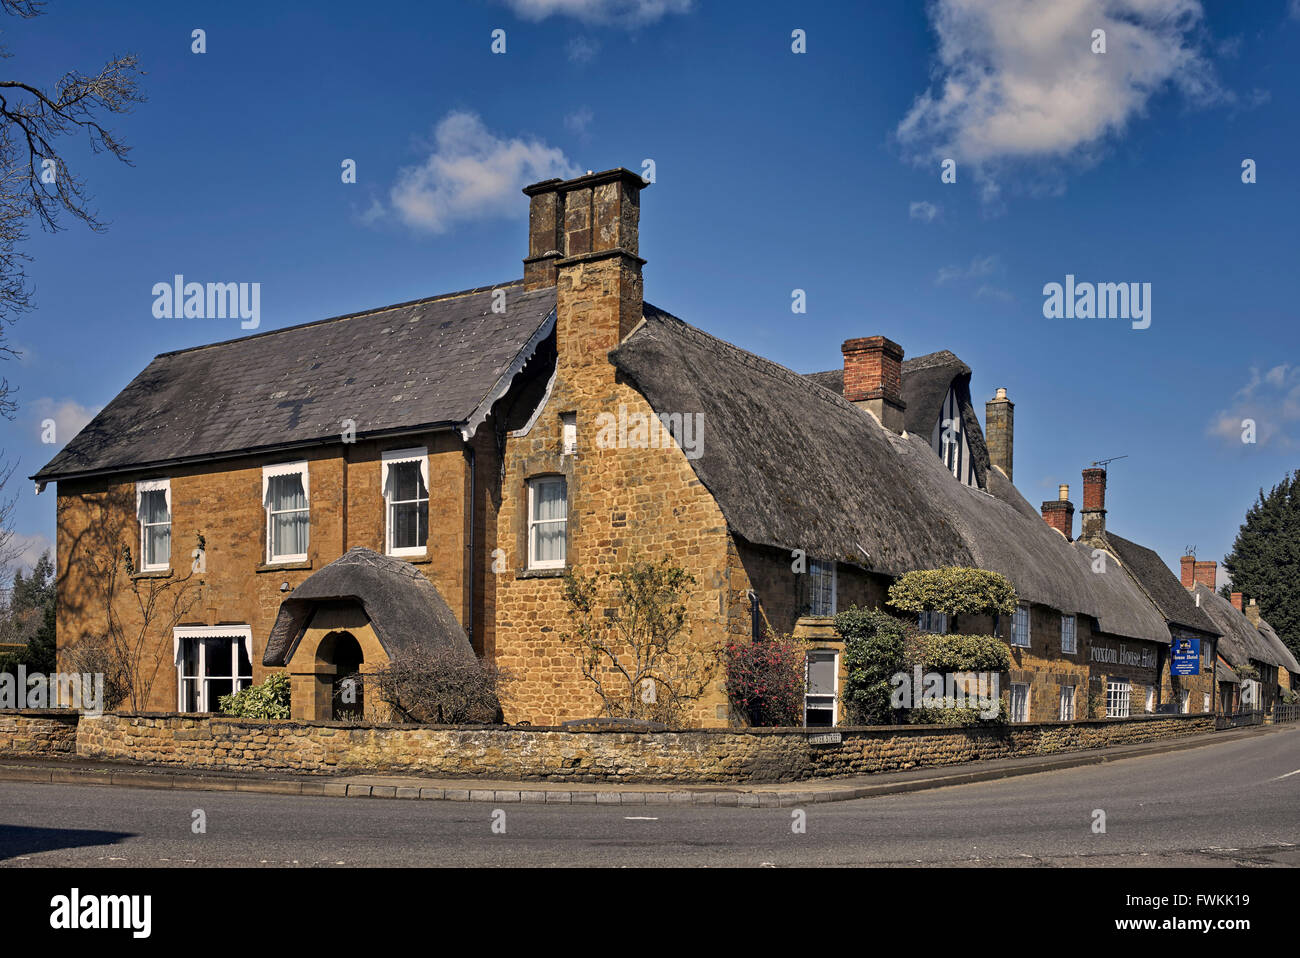 Award winning 17th century Wroxton House Hotel Nr. Banbury Oxfordshire England UK - Stock Image